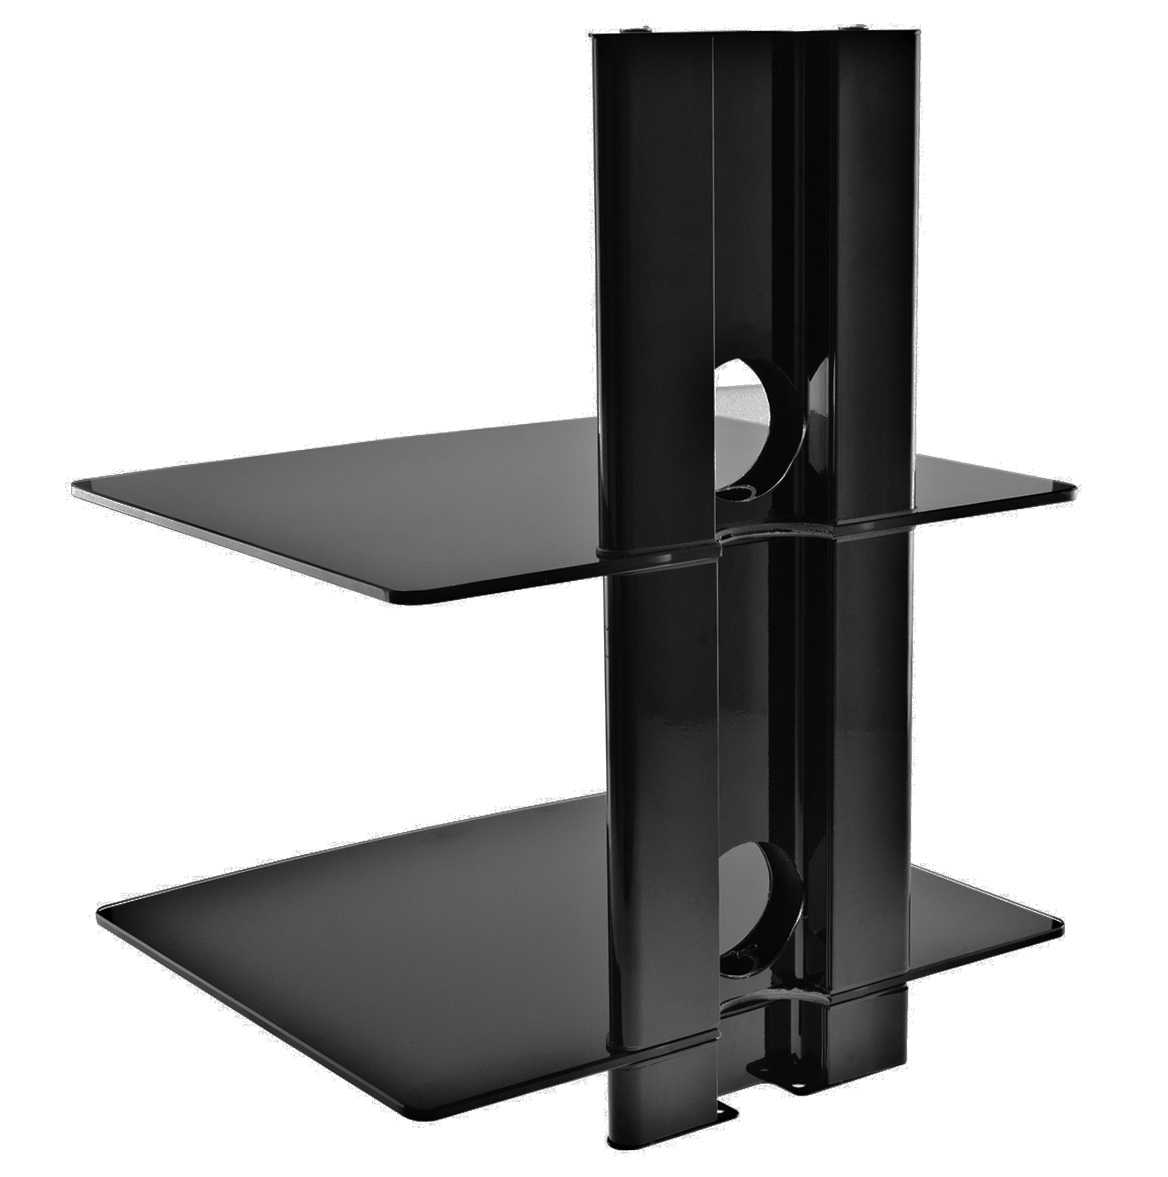 Wall Mount Shelf For Cable Box